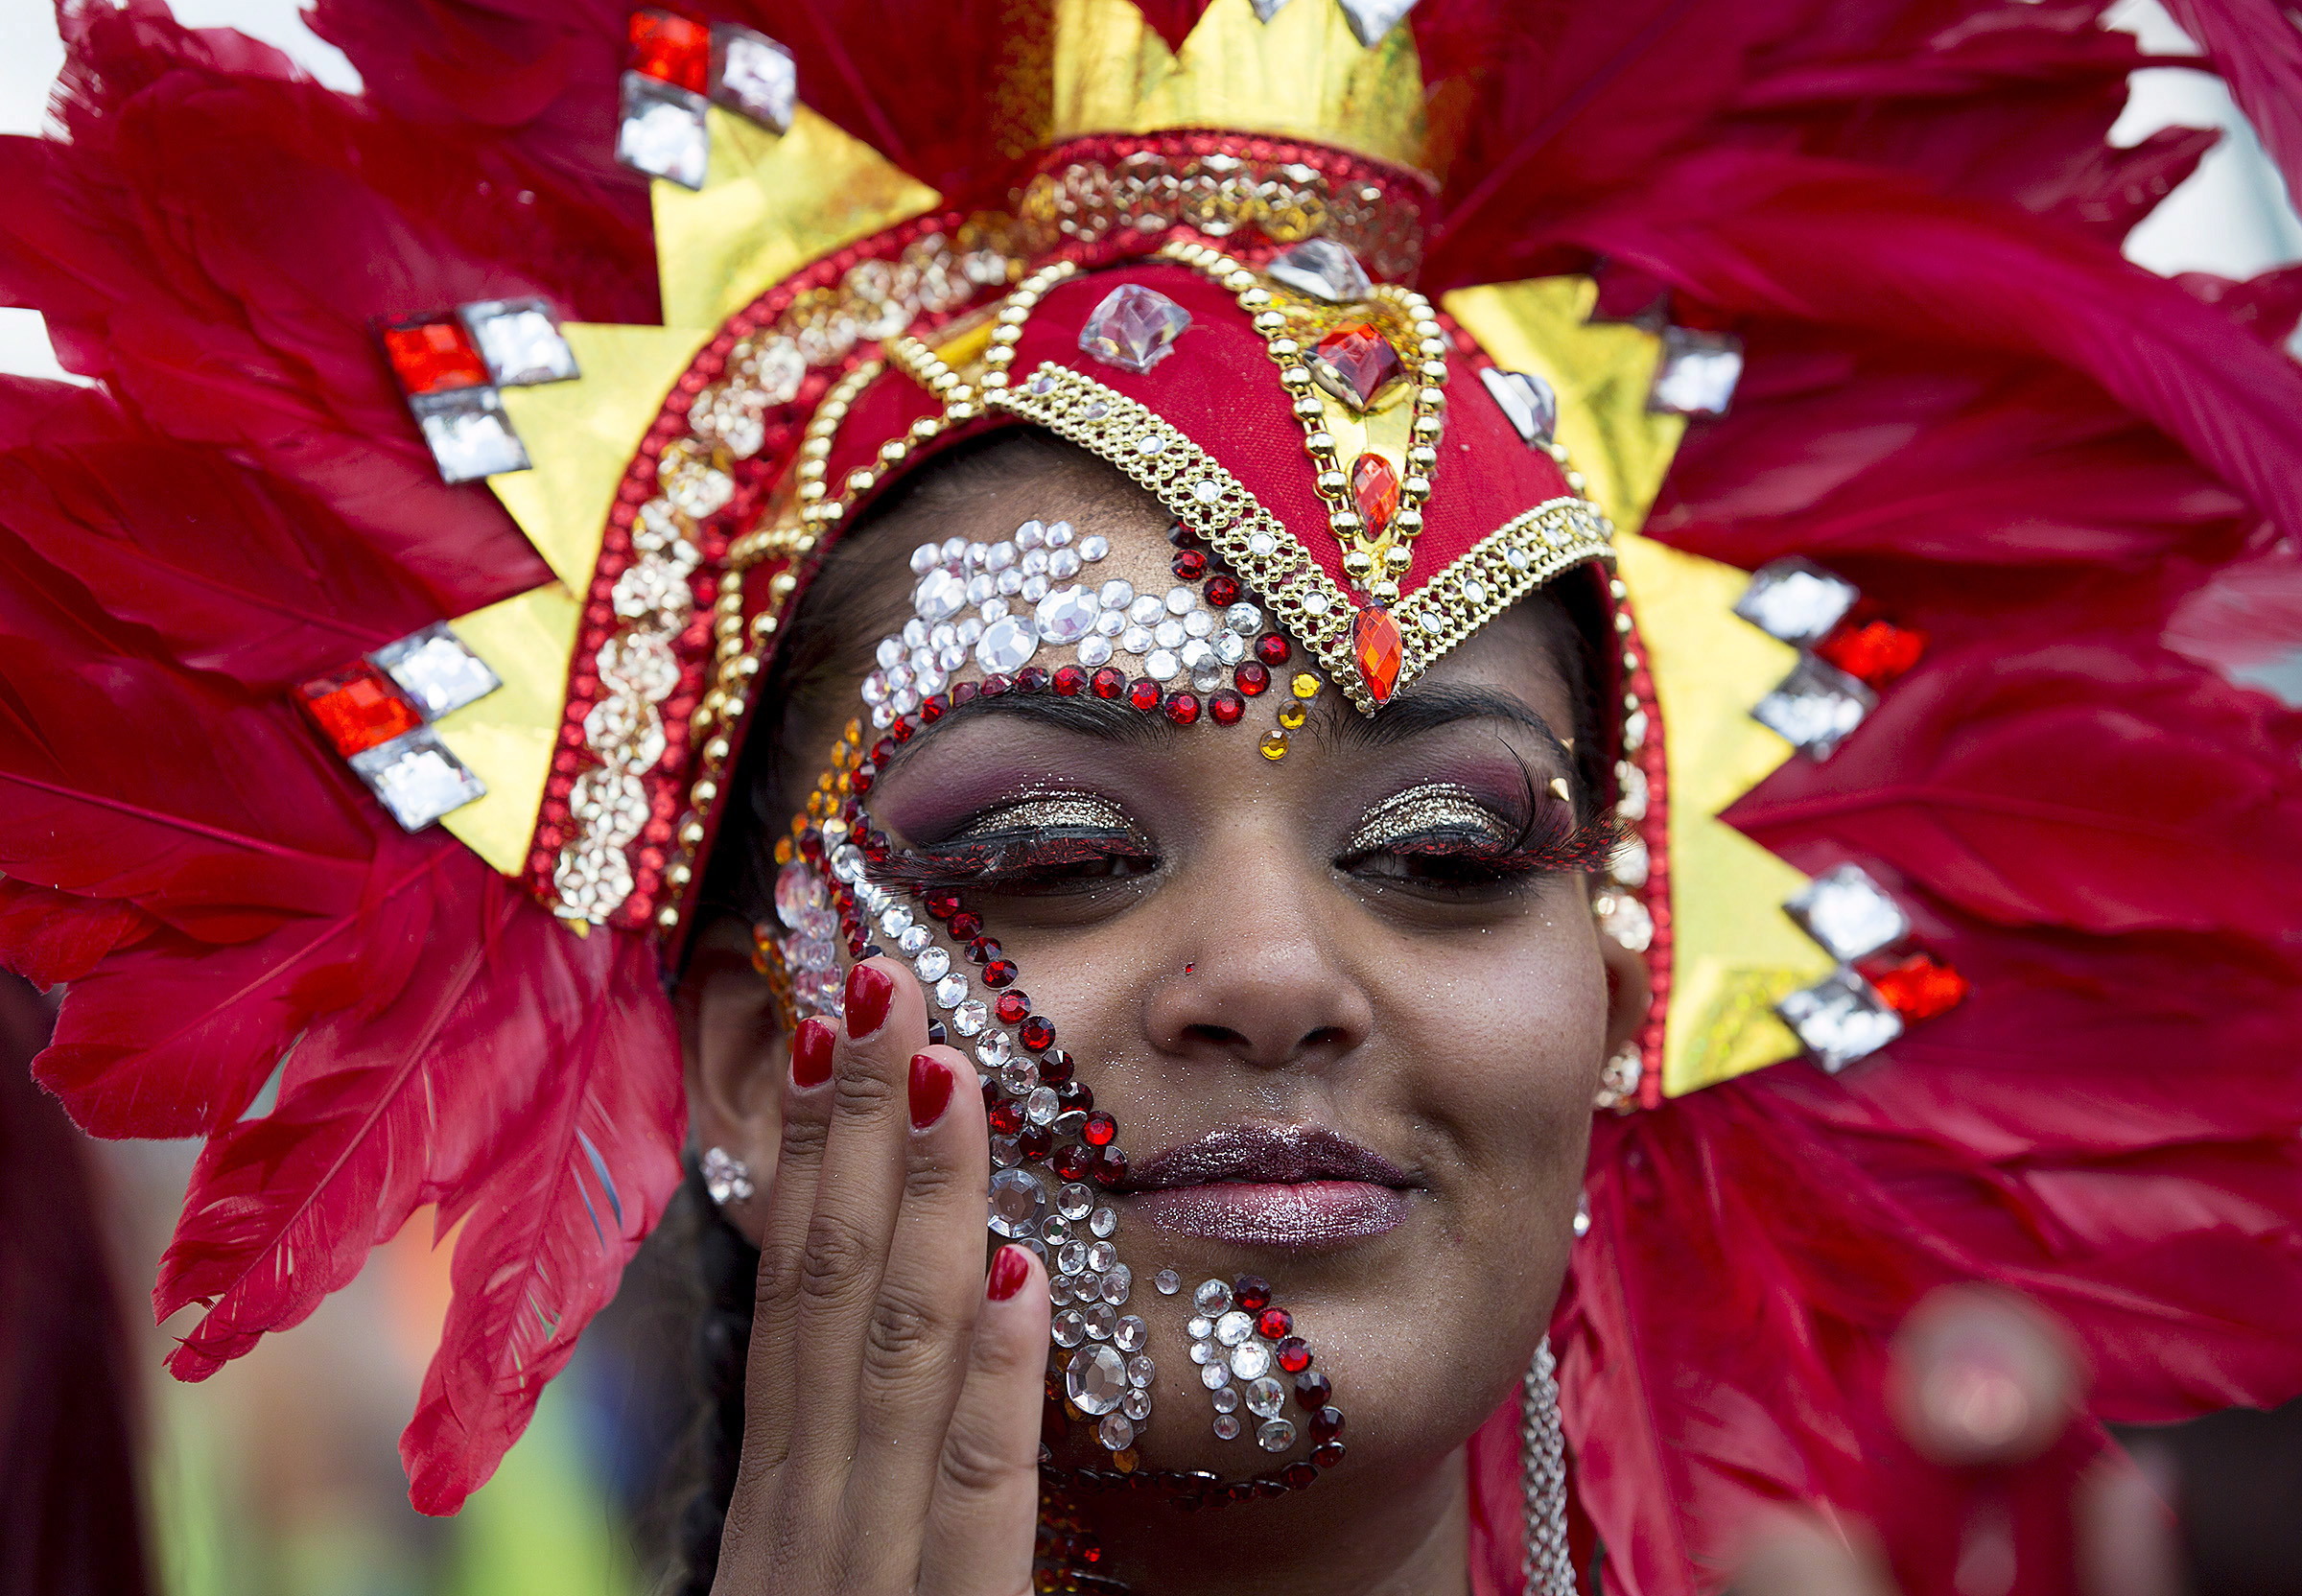 A parader checks on her jewels during the Caribbean Carnival in Toronto on Aug. 3, 2013. THE CANADIAN PRESS/Michelle Siu